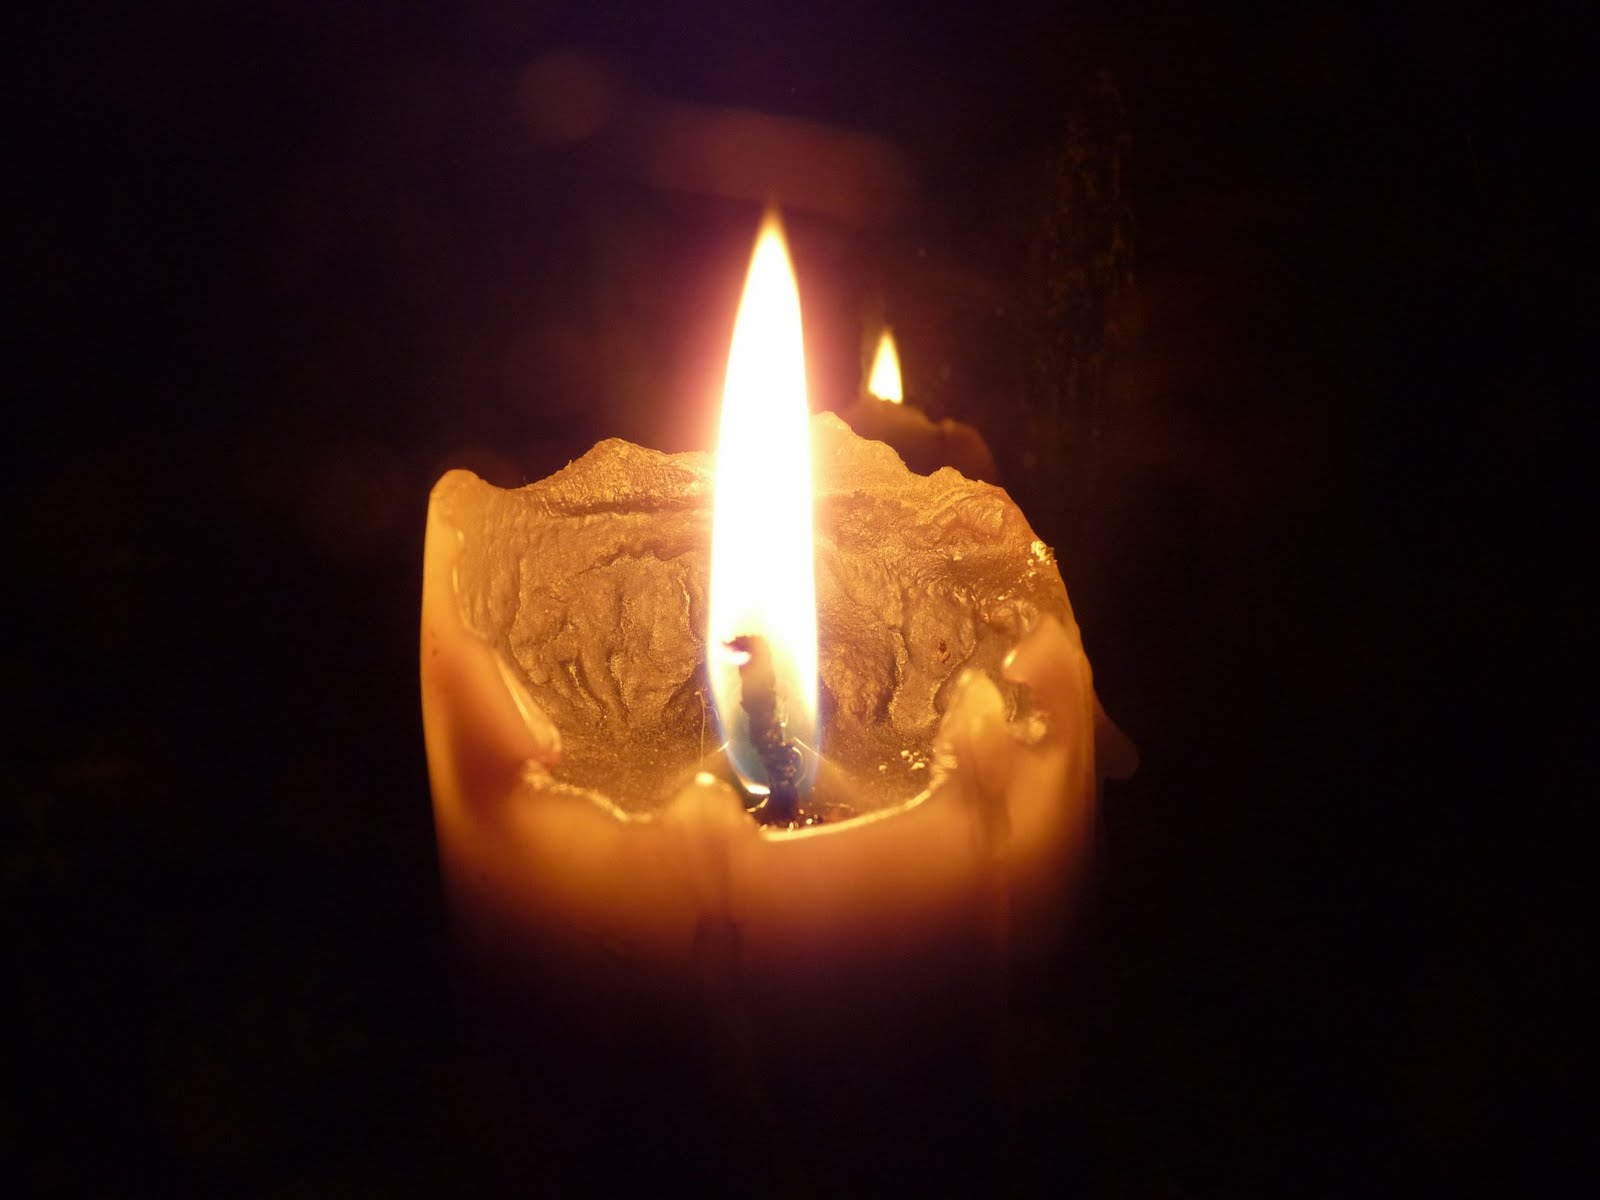 Candle Flame Template Animated candle flame gif